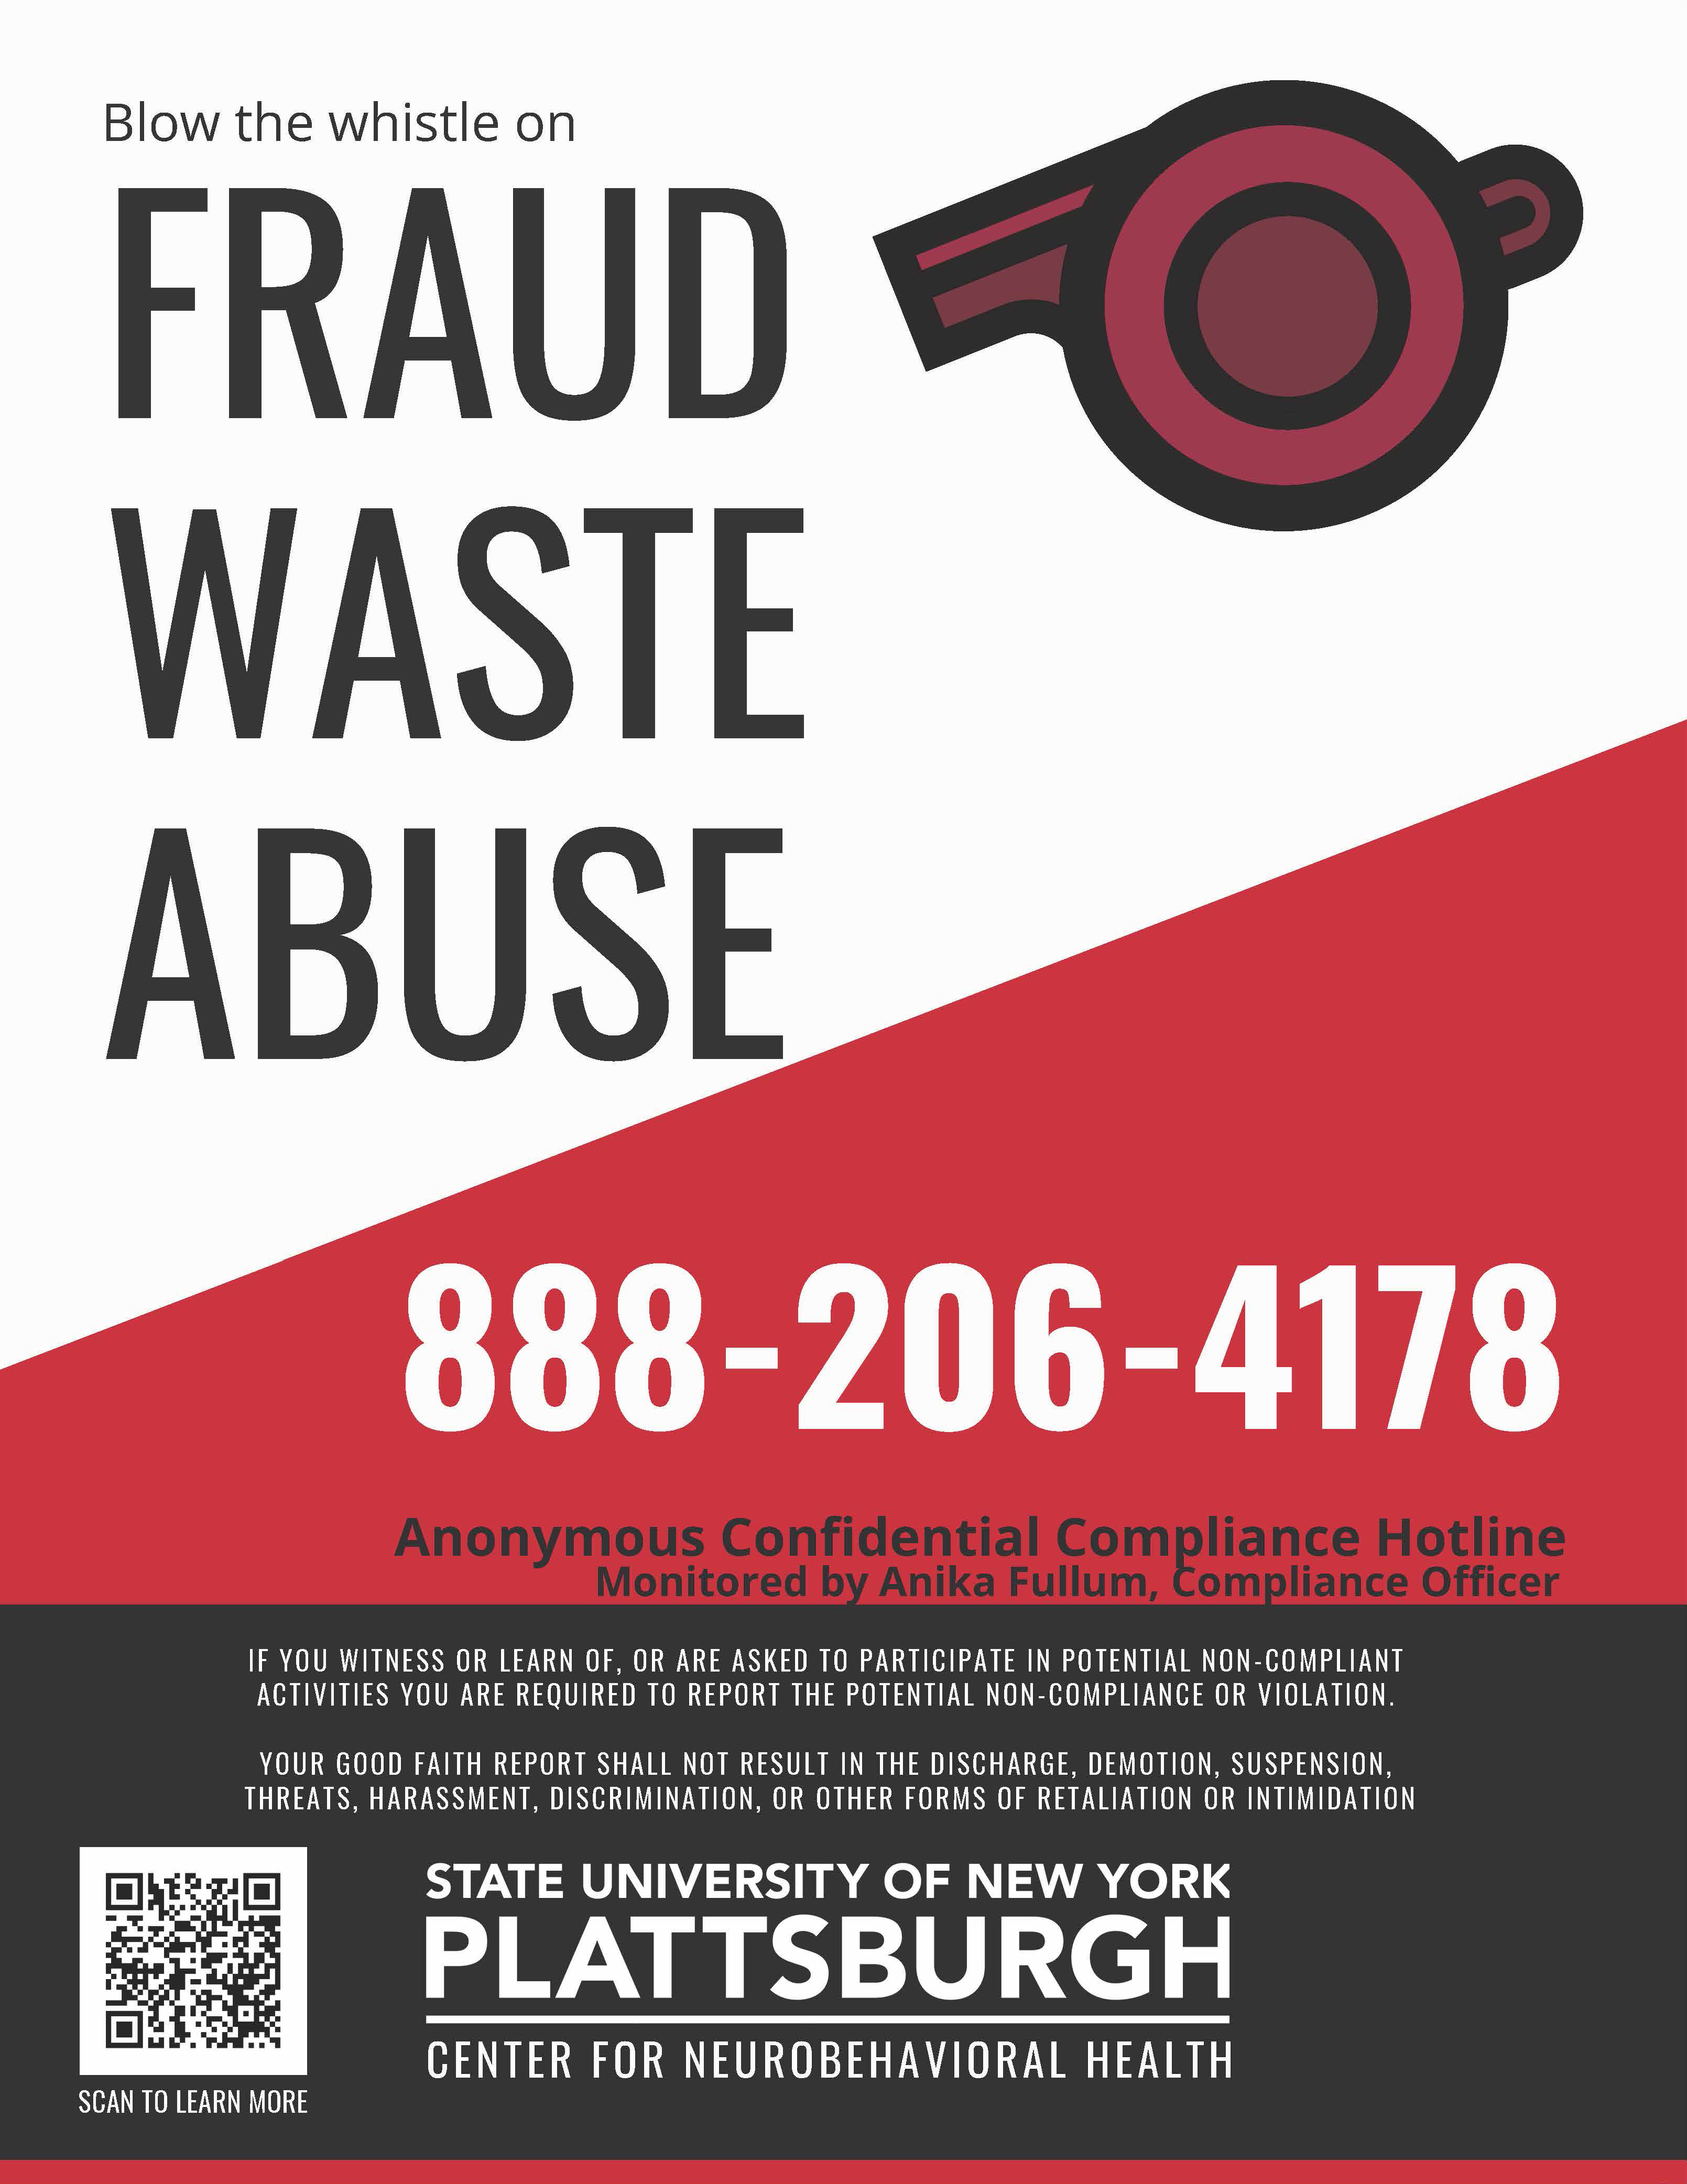 Fraud, waste and abuse hotline number is 888-206-4178, anonymous confidential compliance hotline, monitored by Anika Fullum compliance officer